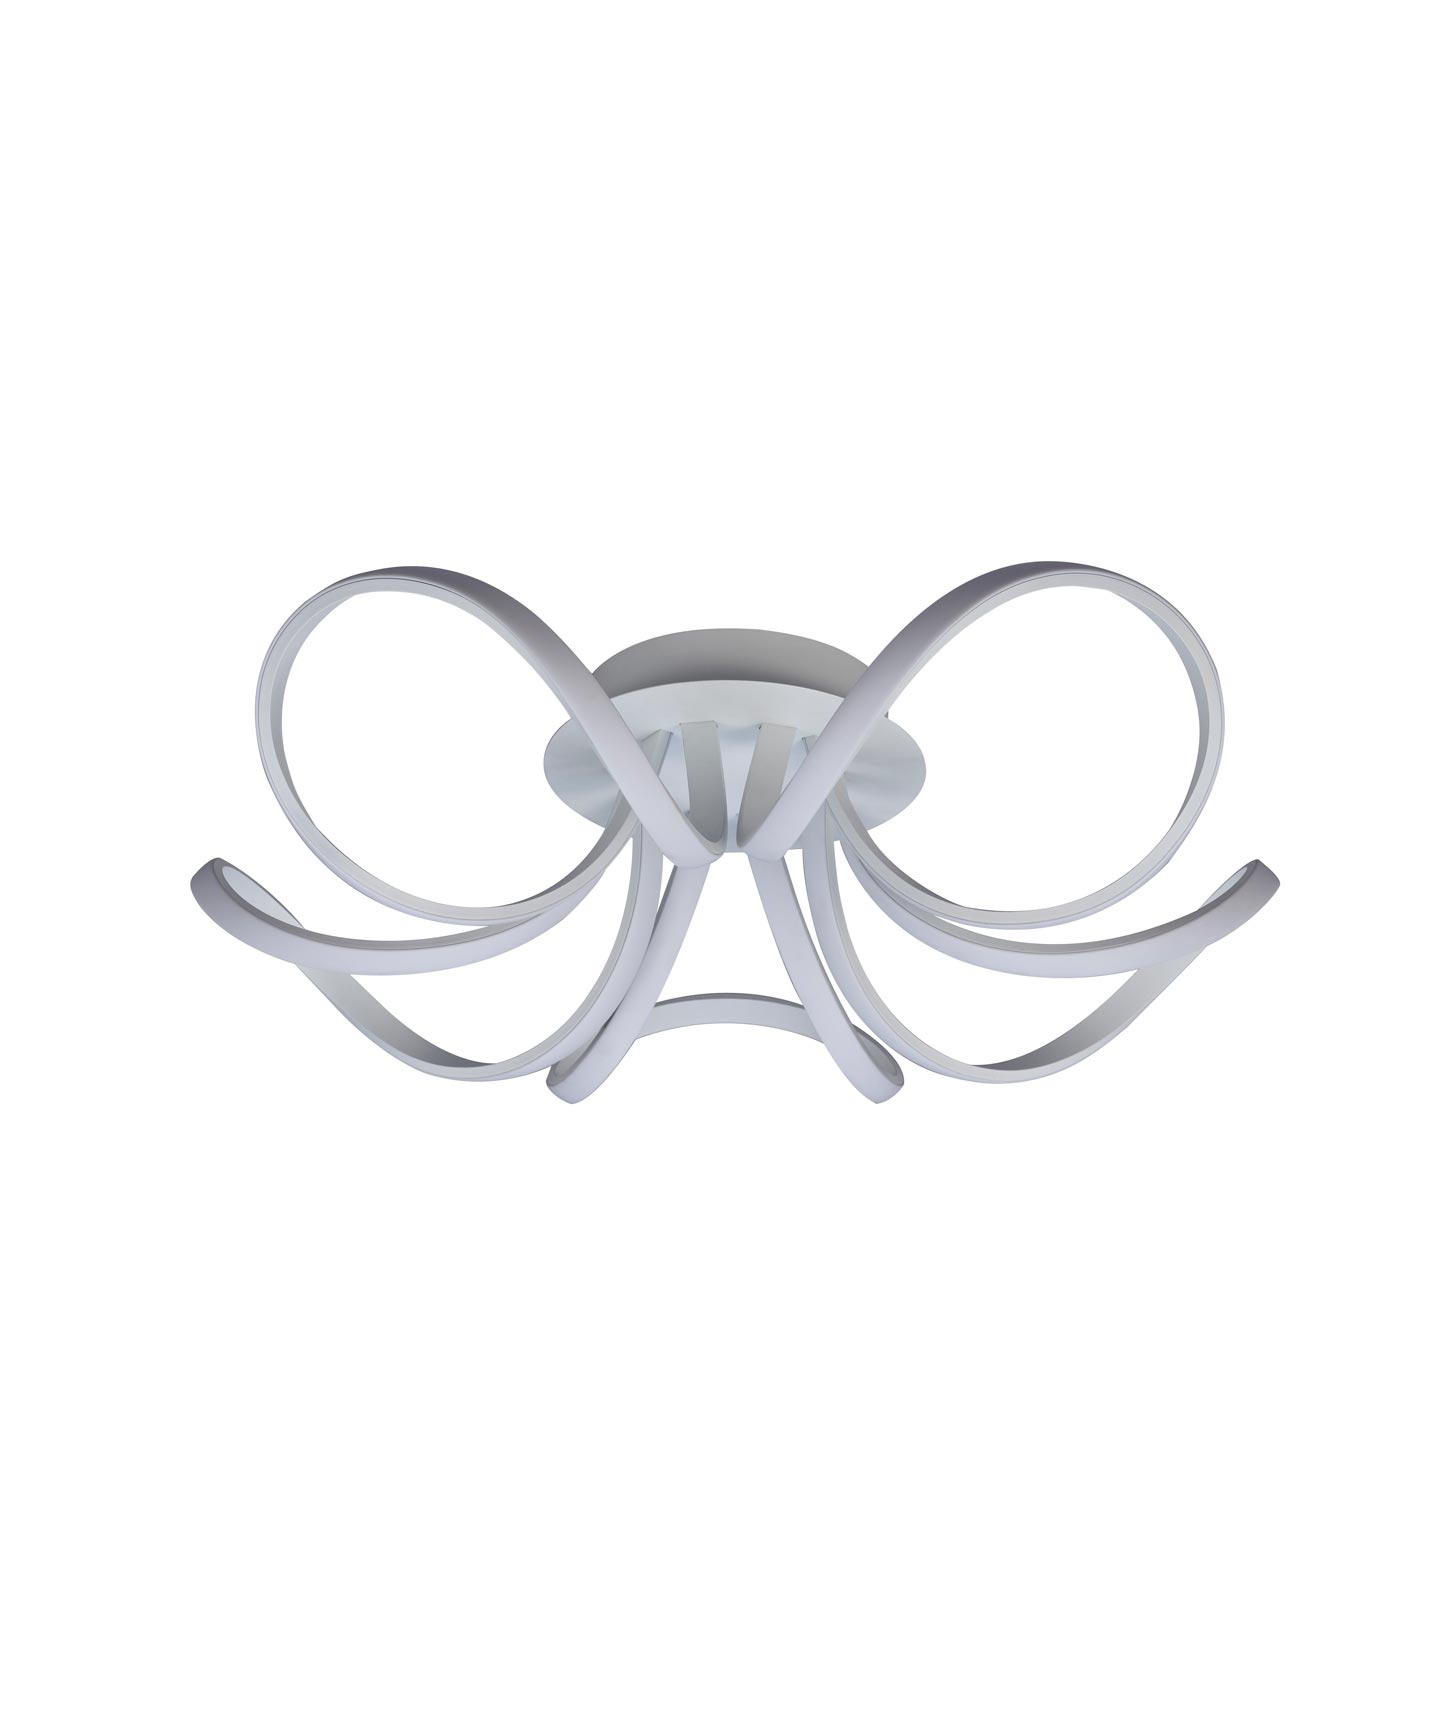 Plafón techo blanco dimmable KNOT LED